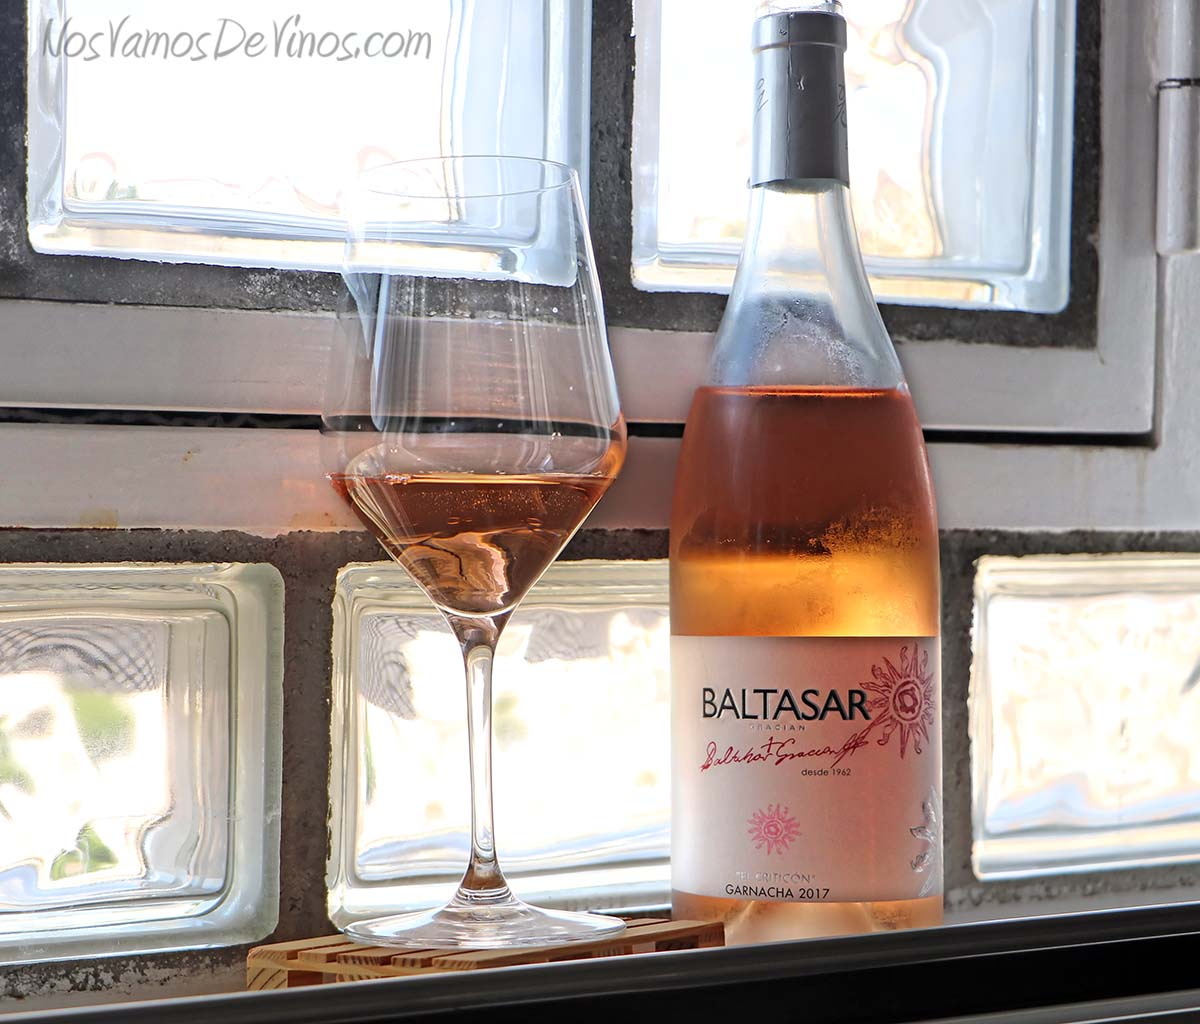 Baltasar Gracian El Criticon Garnacha 2017